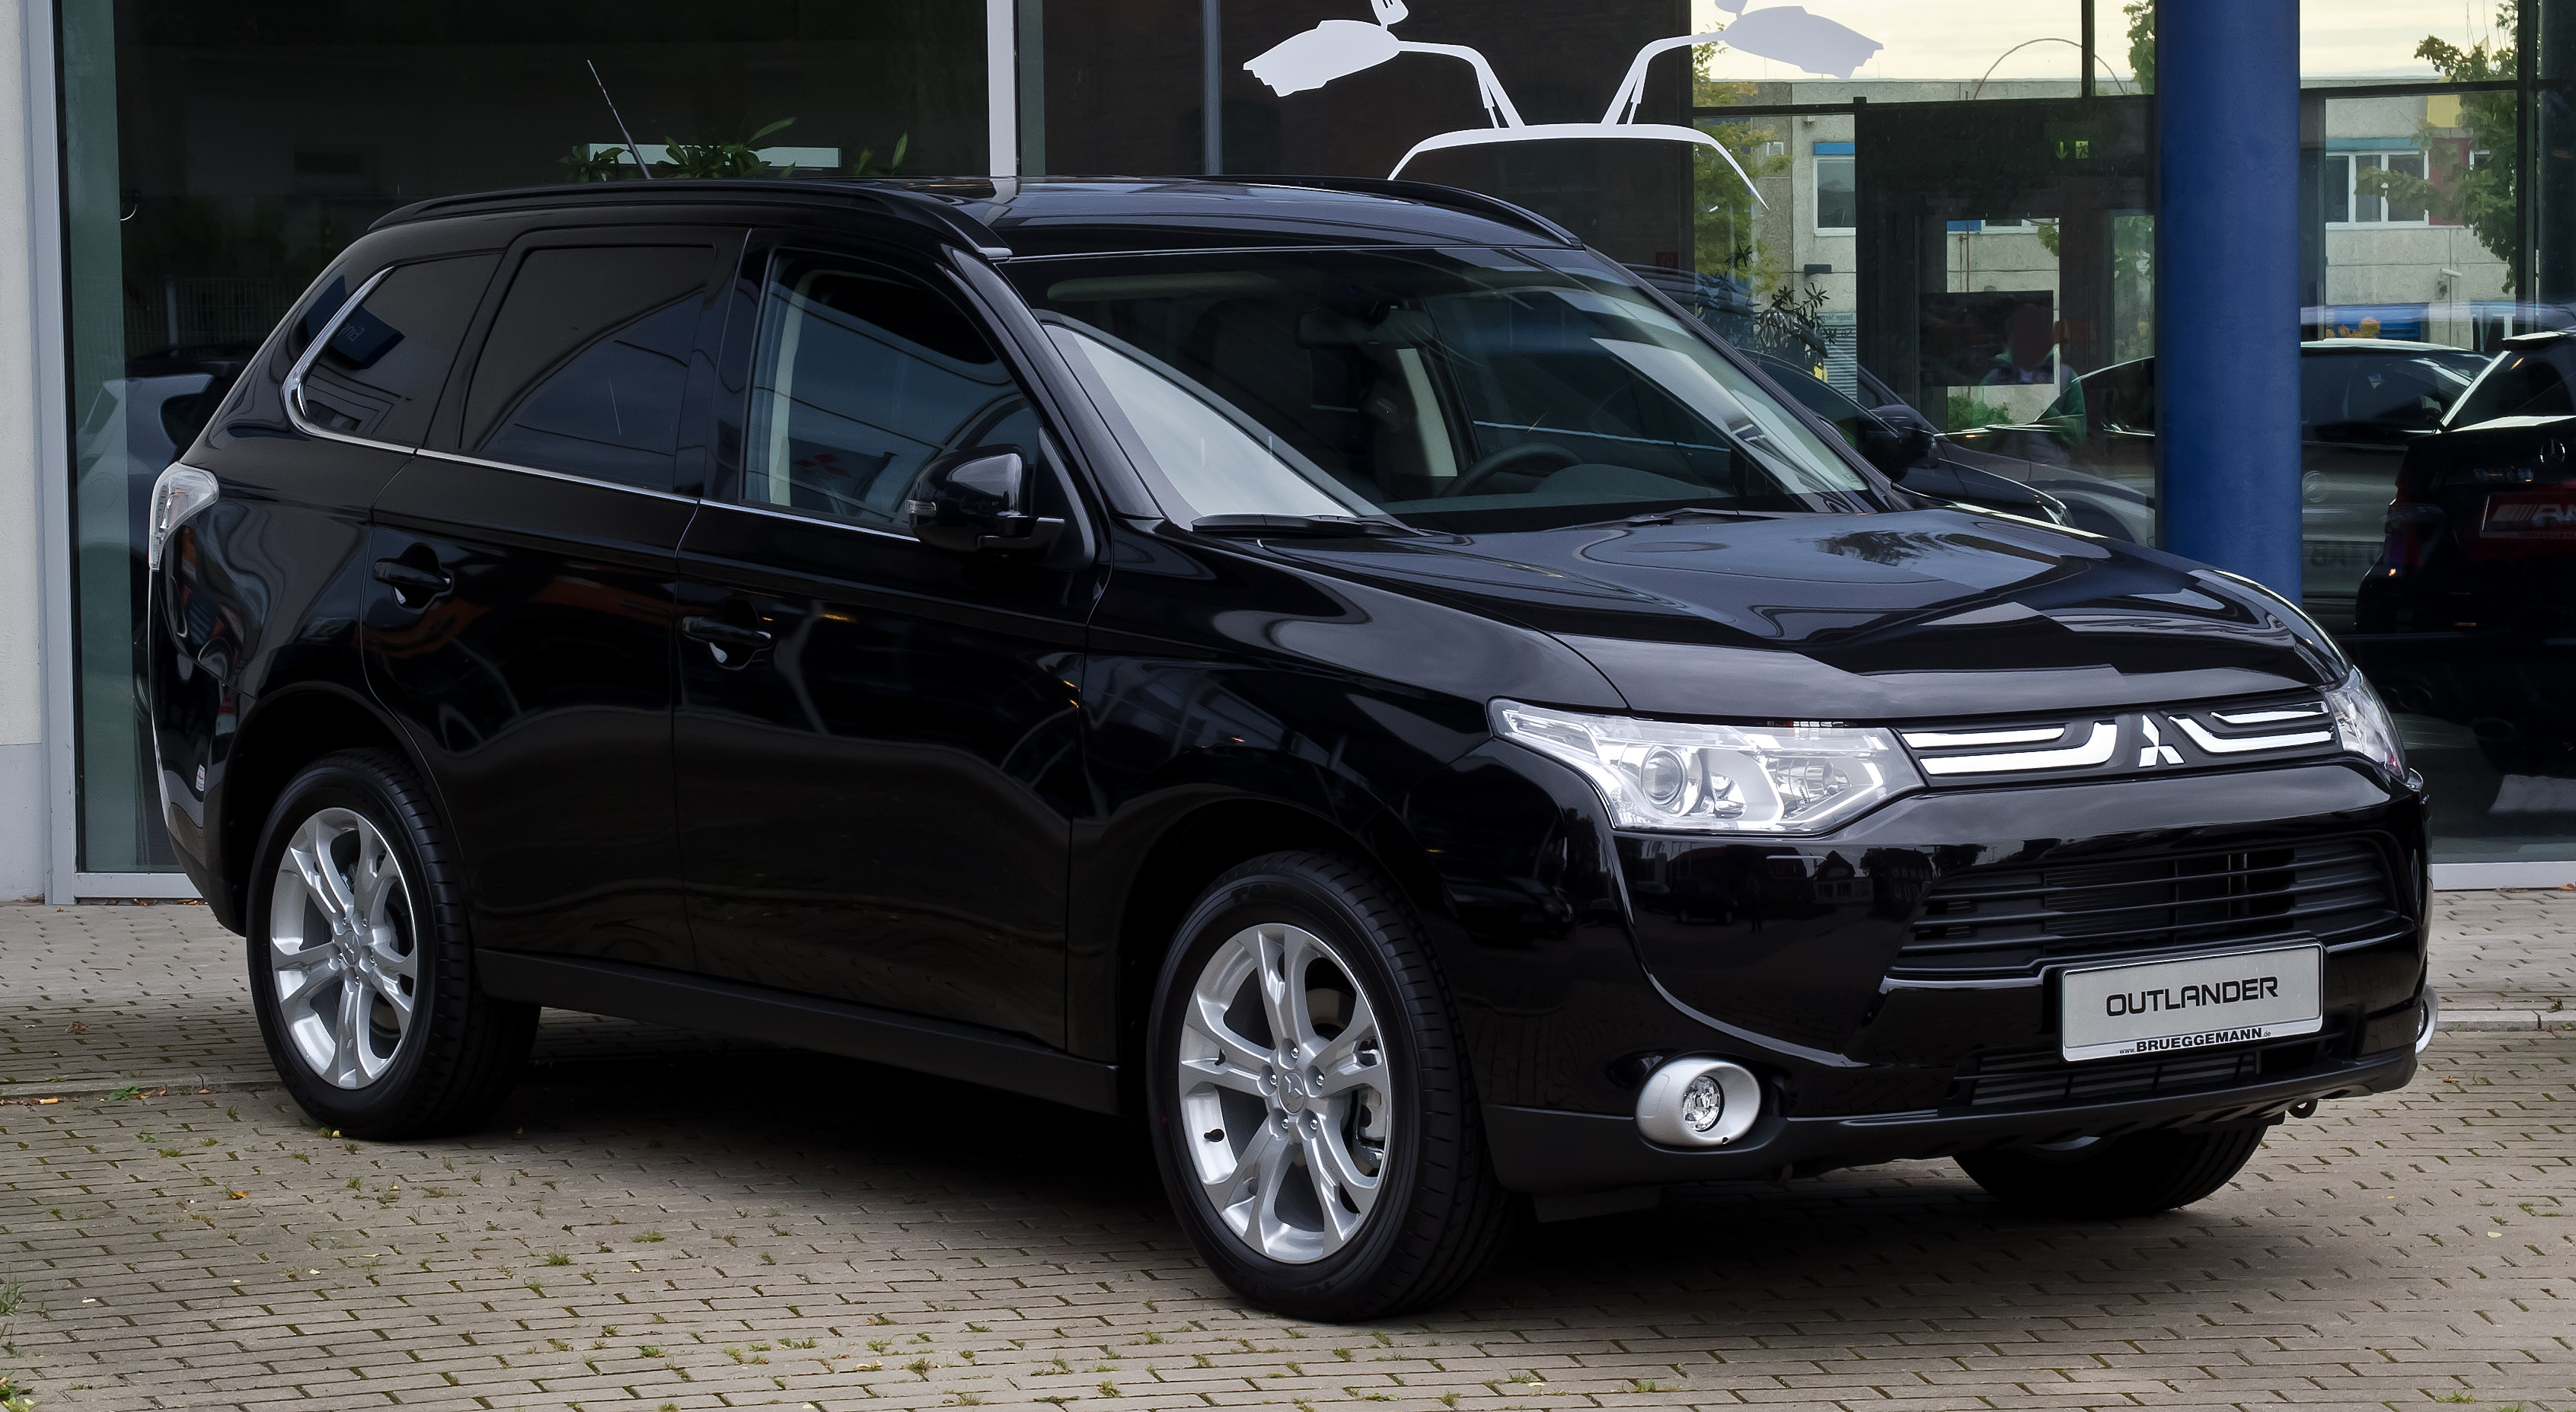 Mitsubishi outlander photo - 2